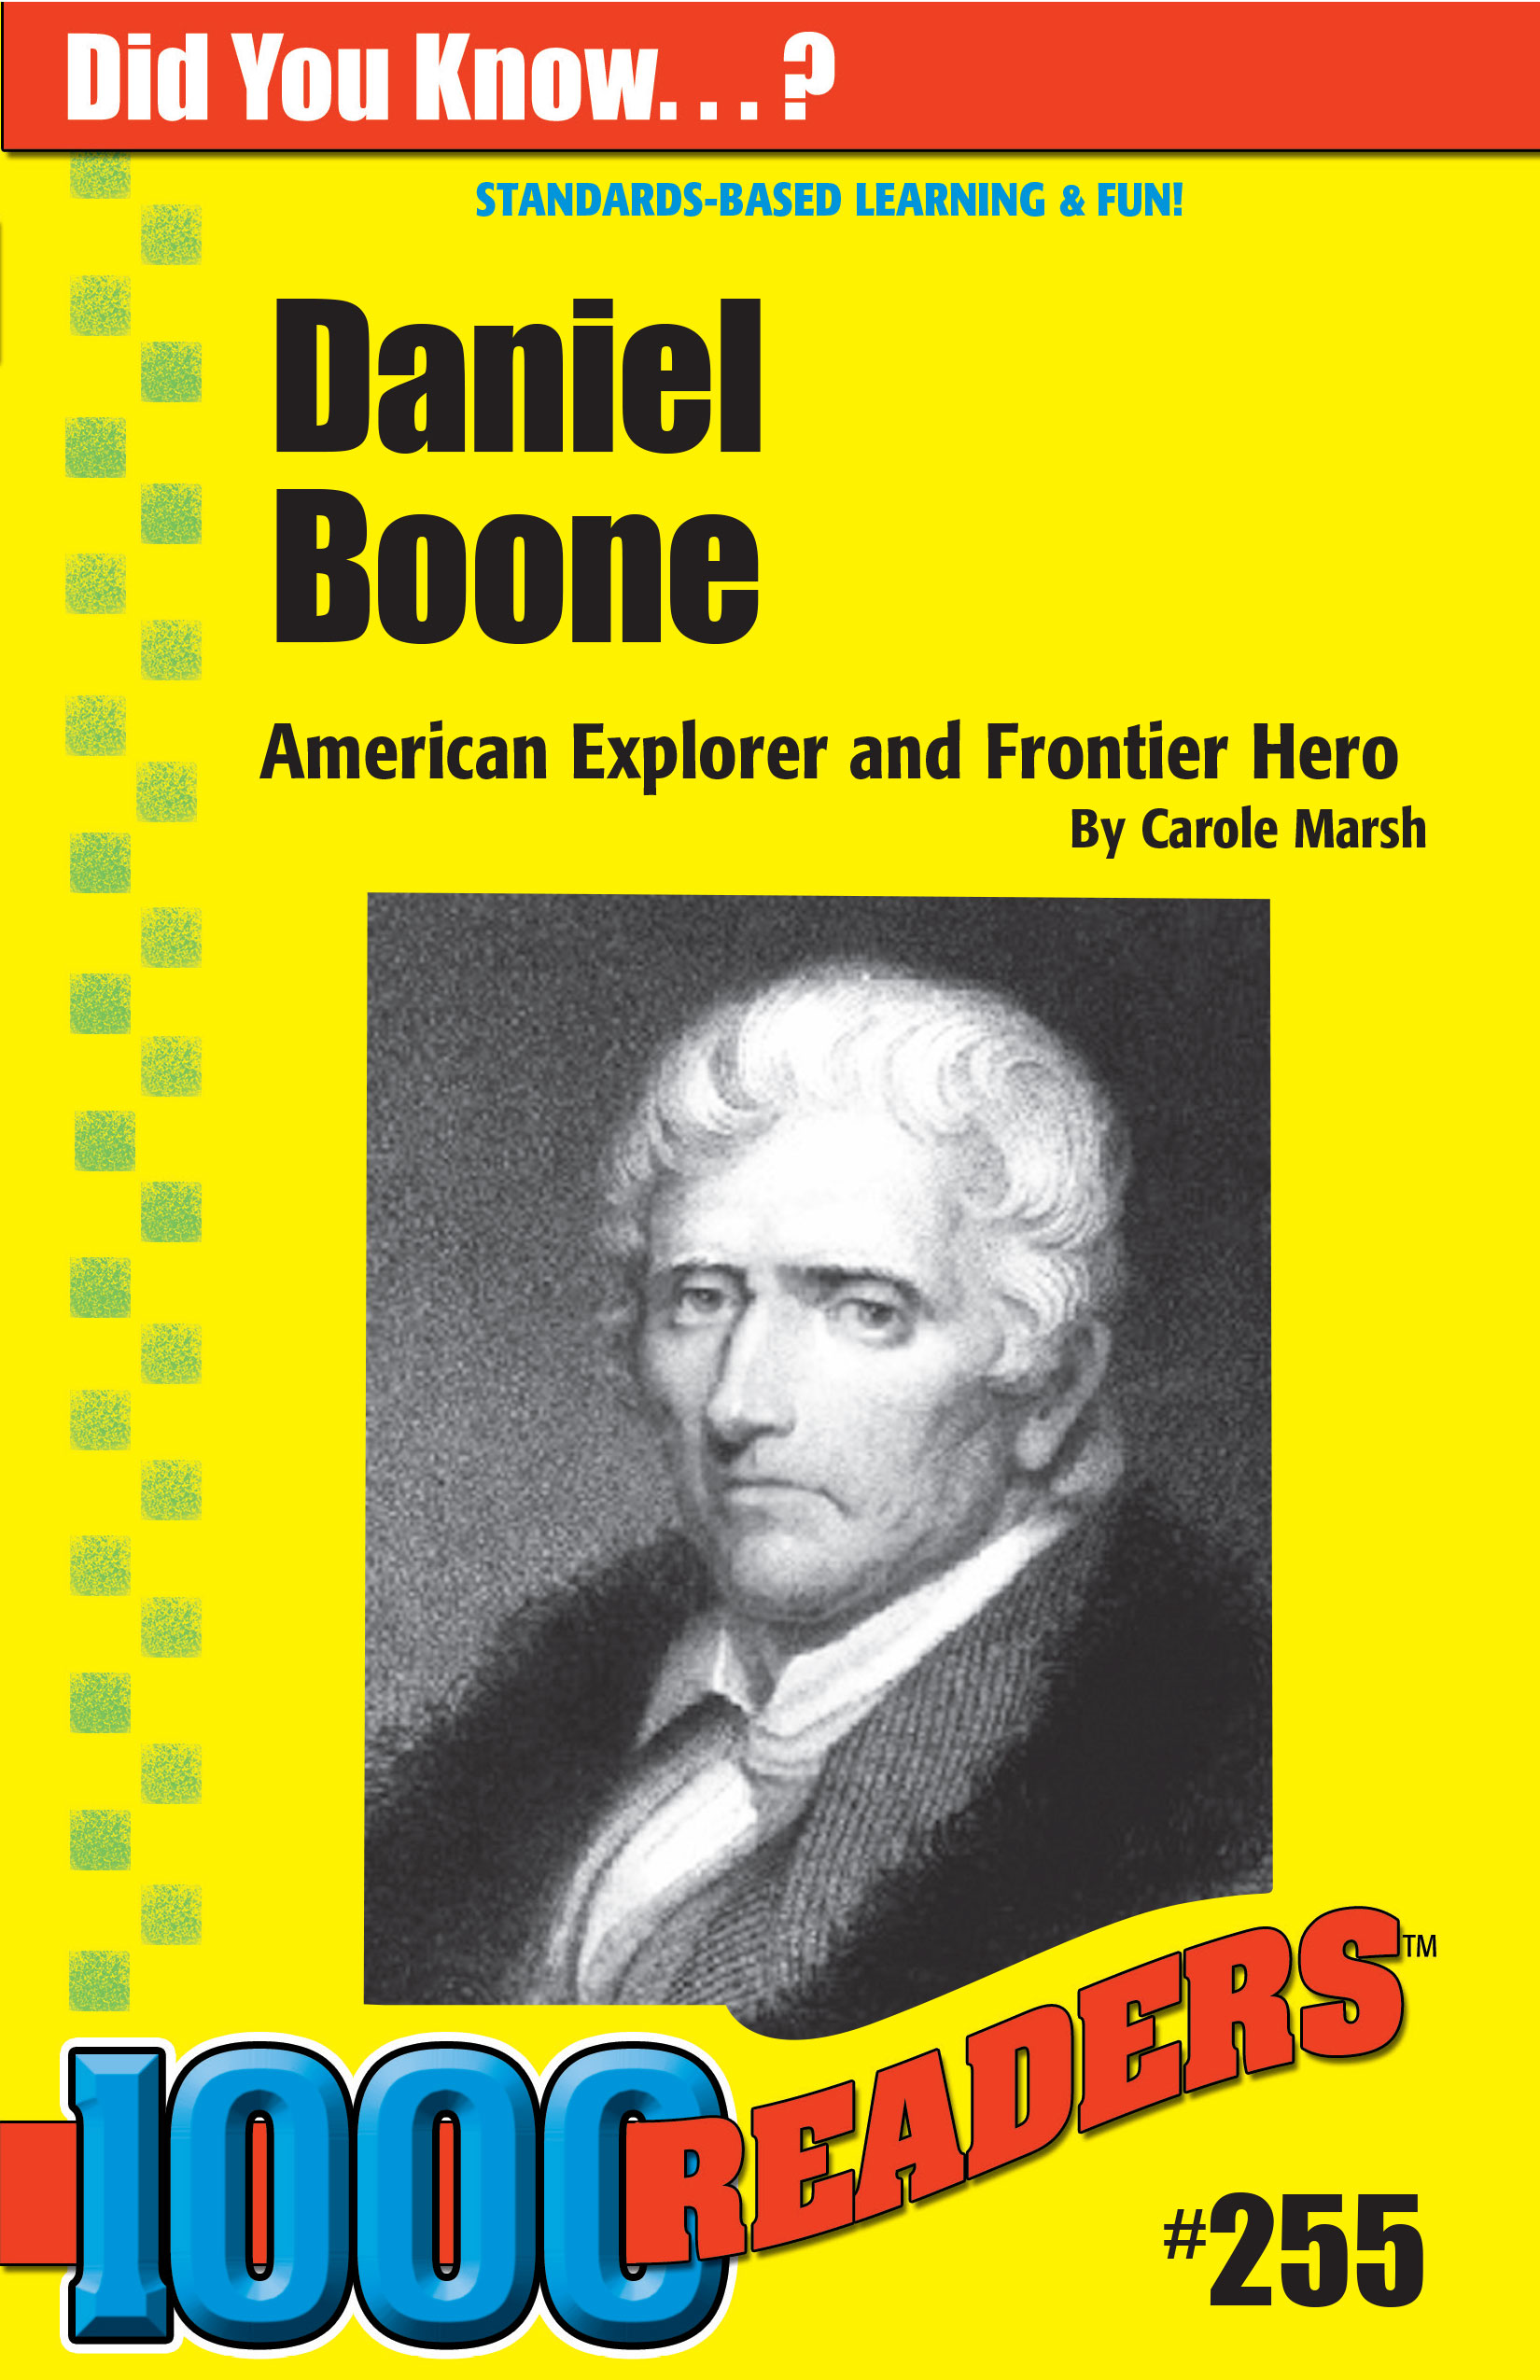 Daniel Boone: American Explorer and Frontier Hero